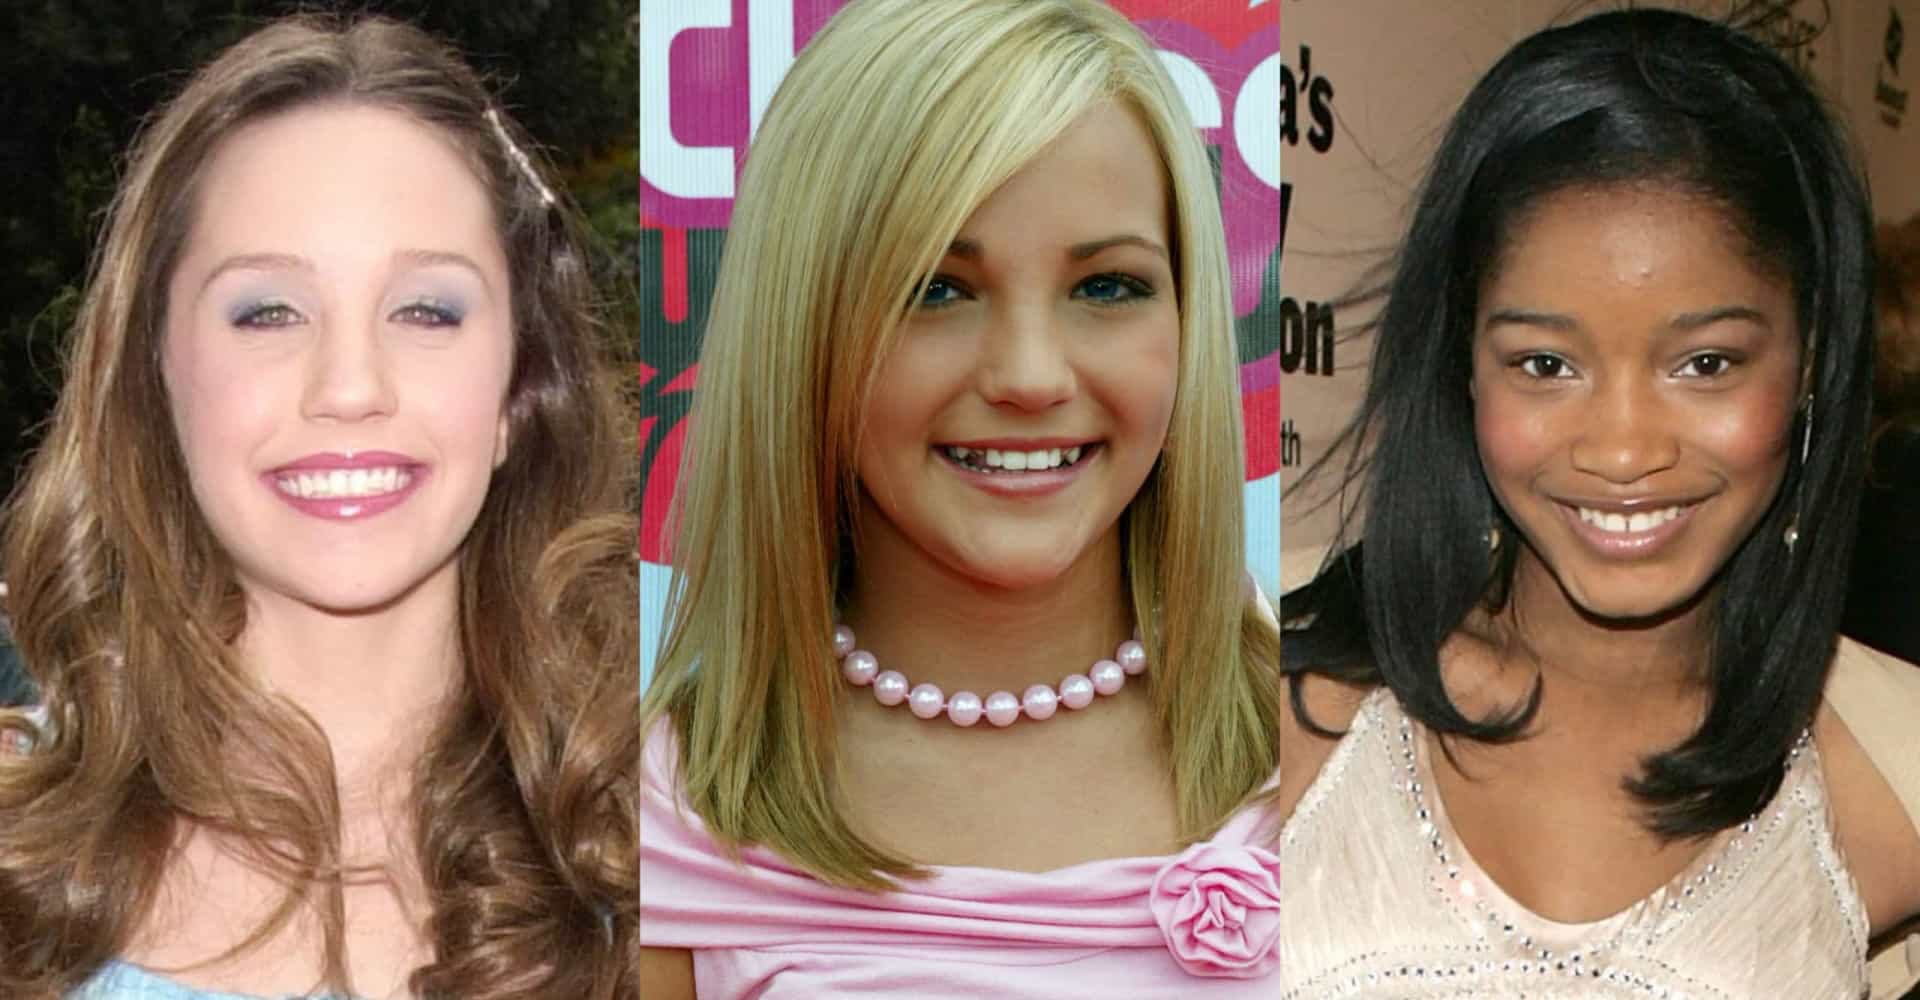 Nickelodeon stars: Then and now